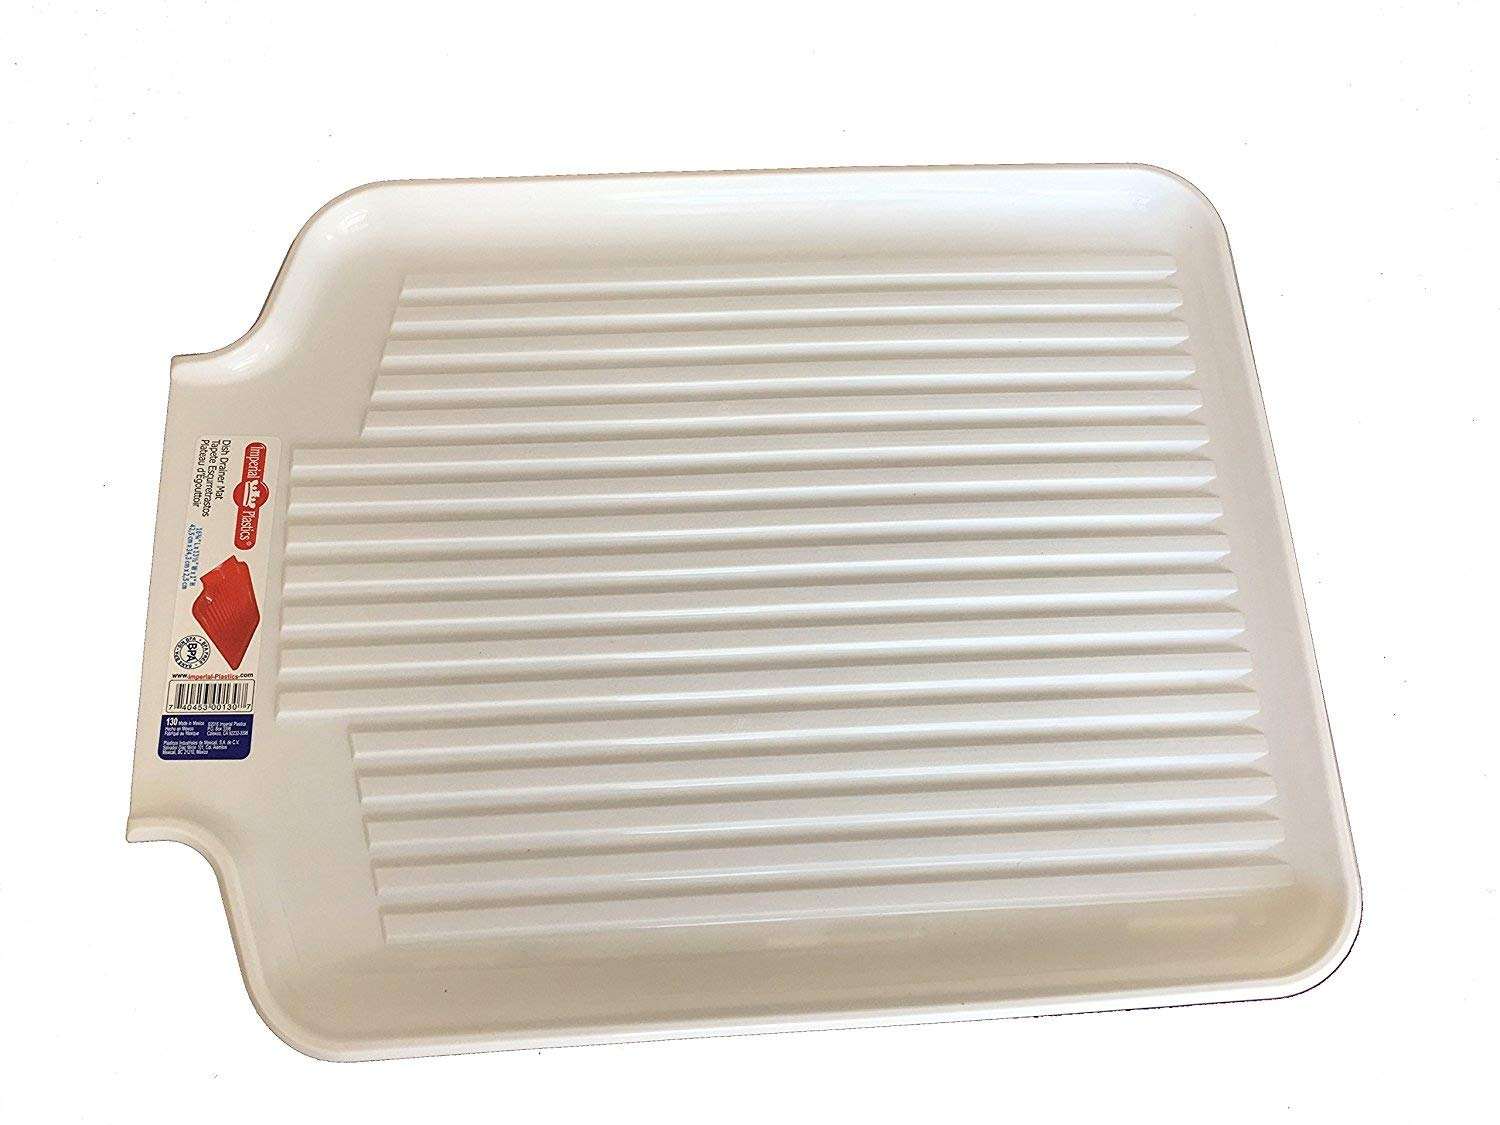 Kitchen Counter Dish Drainer and Drying Mat, White Imperial Plastics